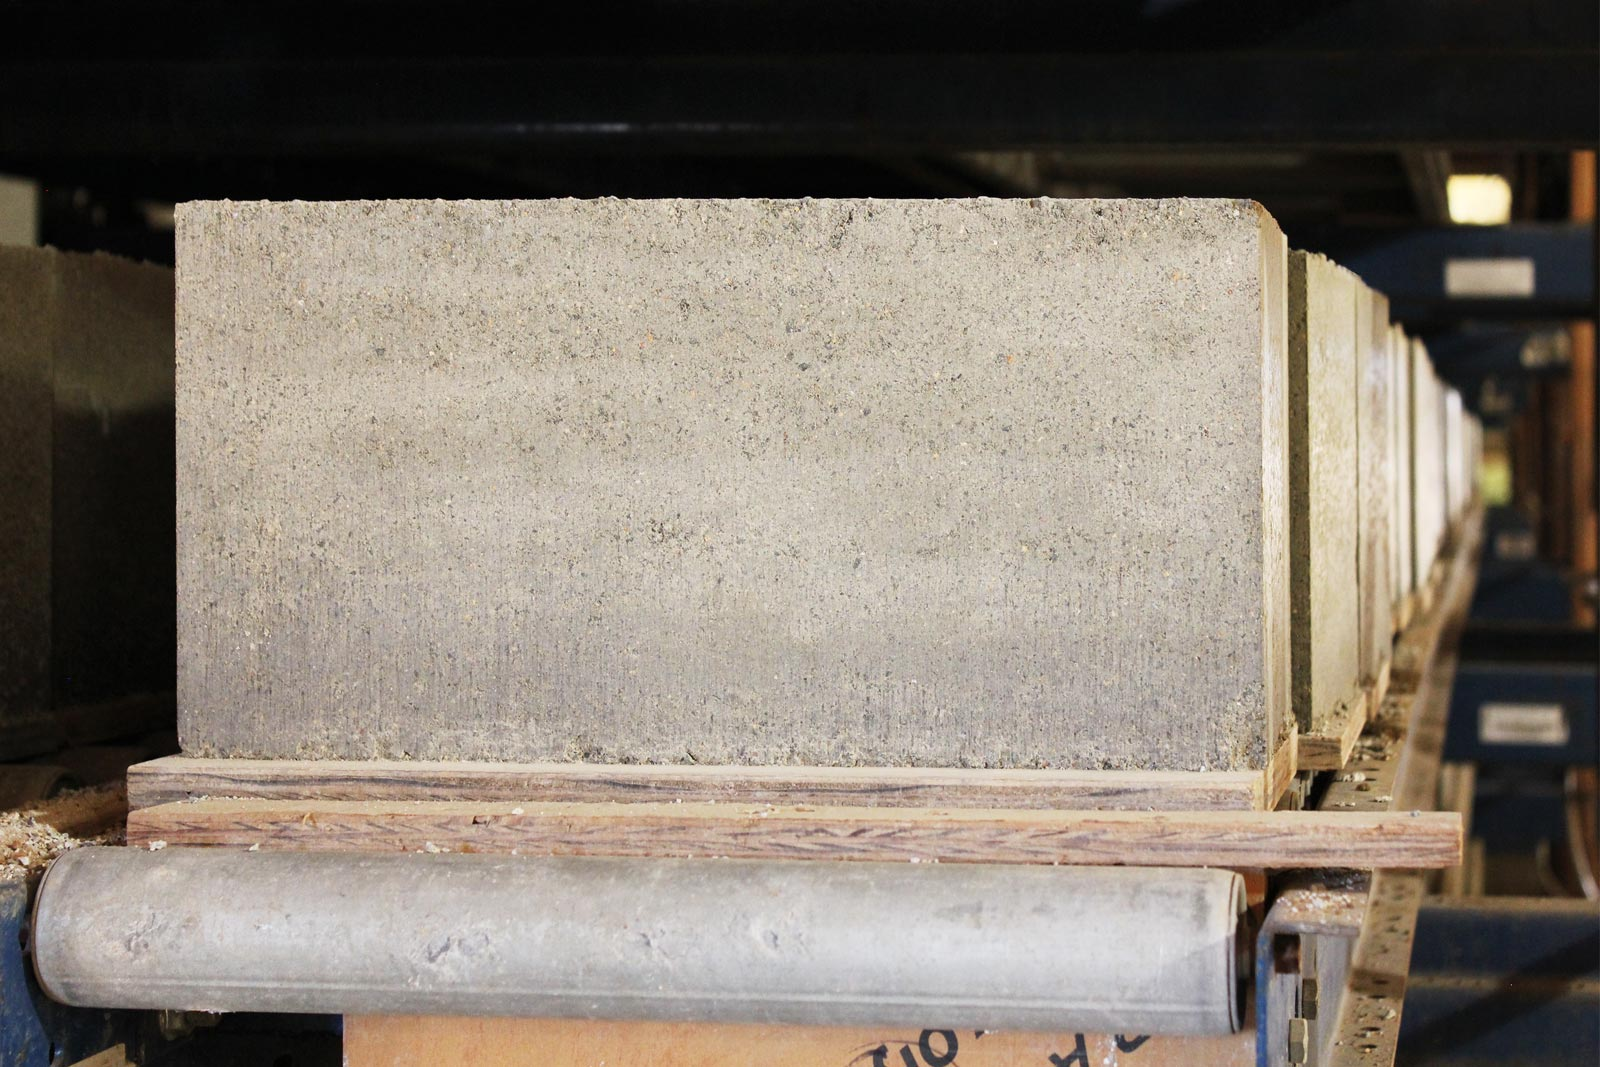 Block curing after manufacturing. The block's white appearance emerges during the curing process.